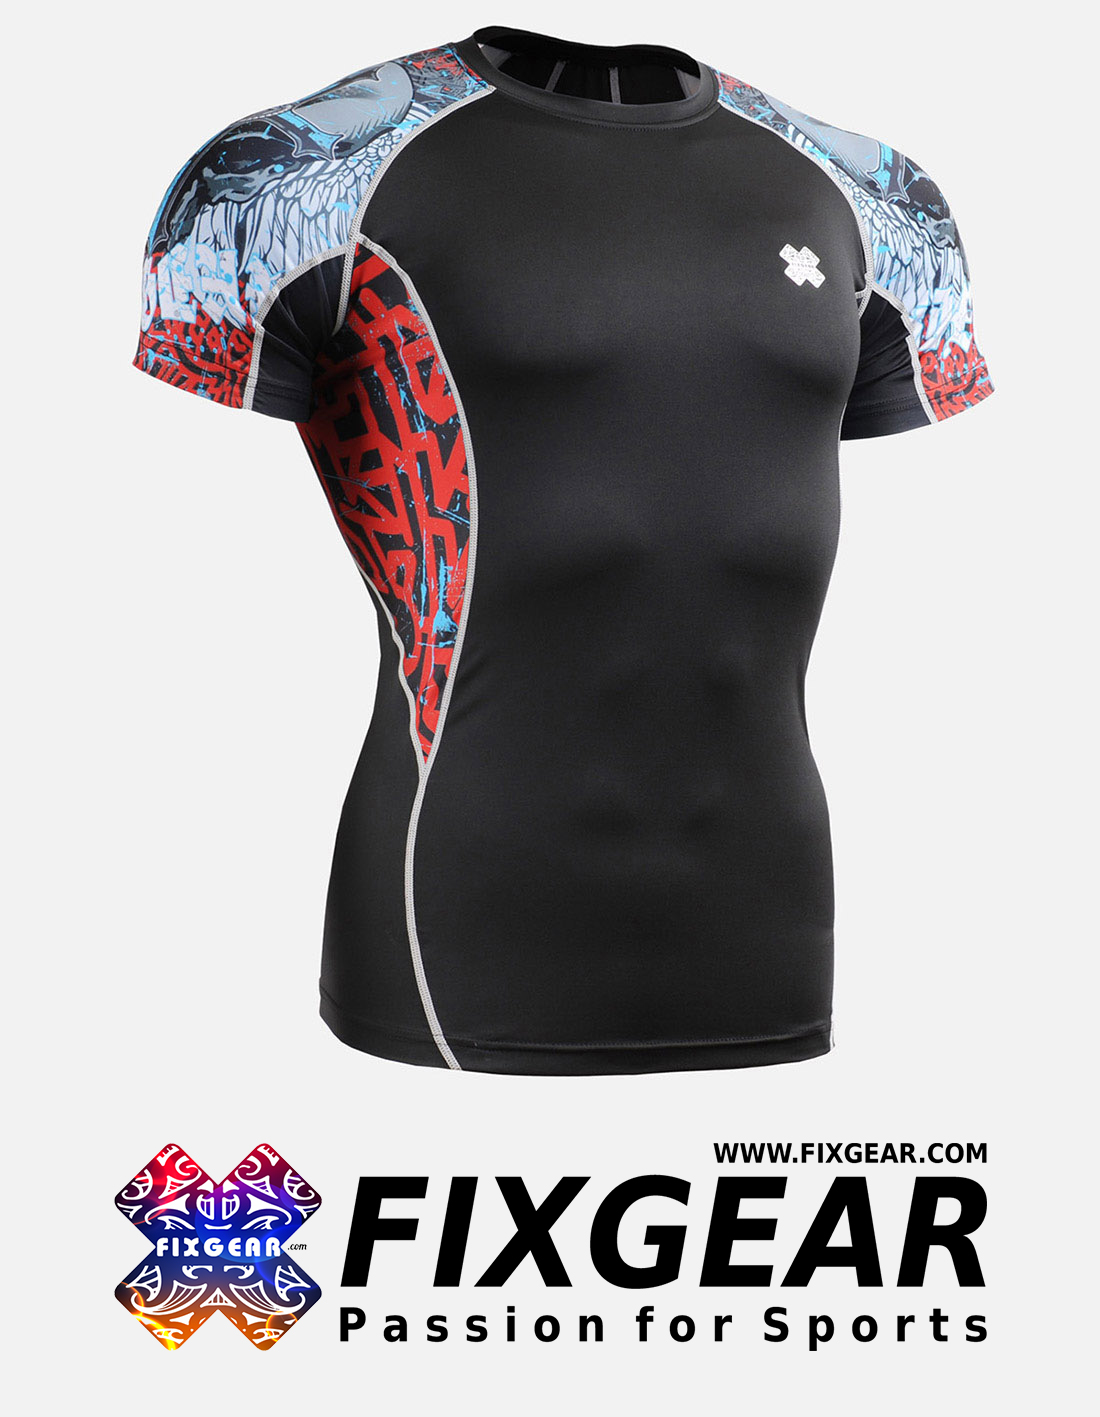 FIXGEAR C2S-B73 Compression Base Layer Shirt Short Sleeve